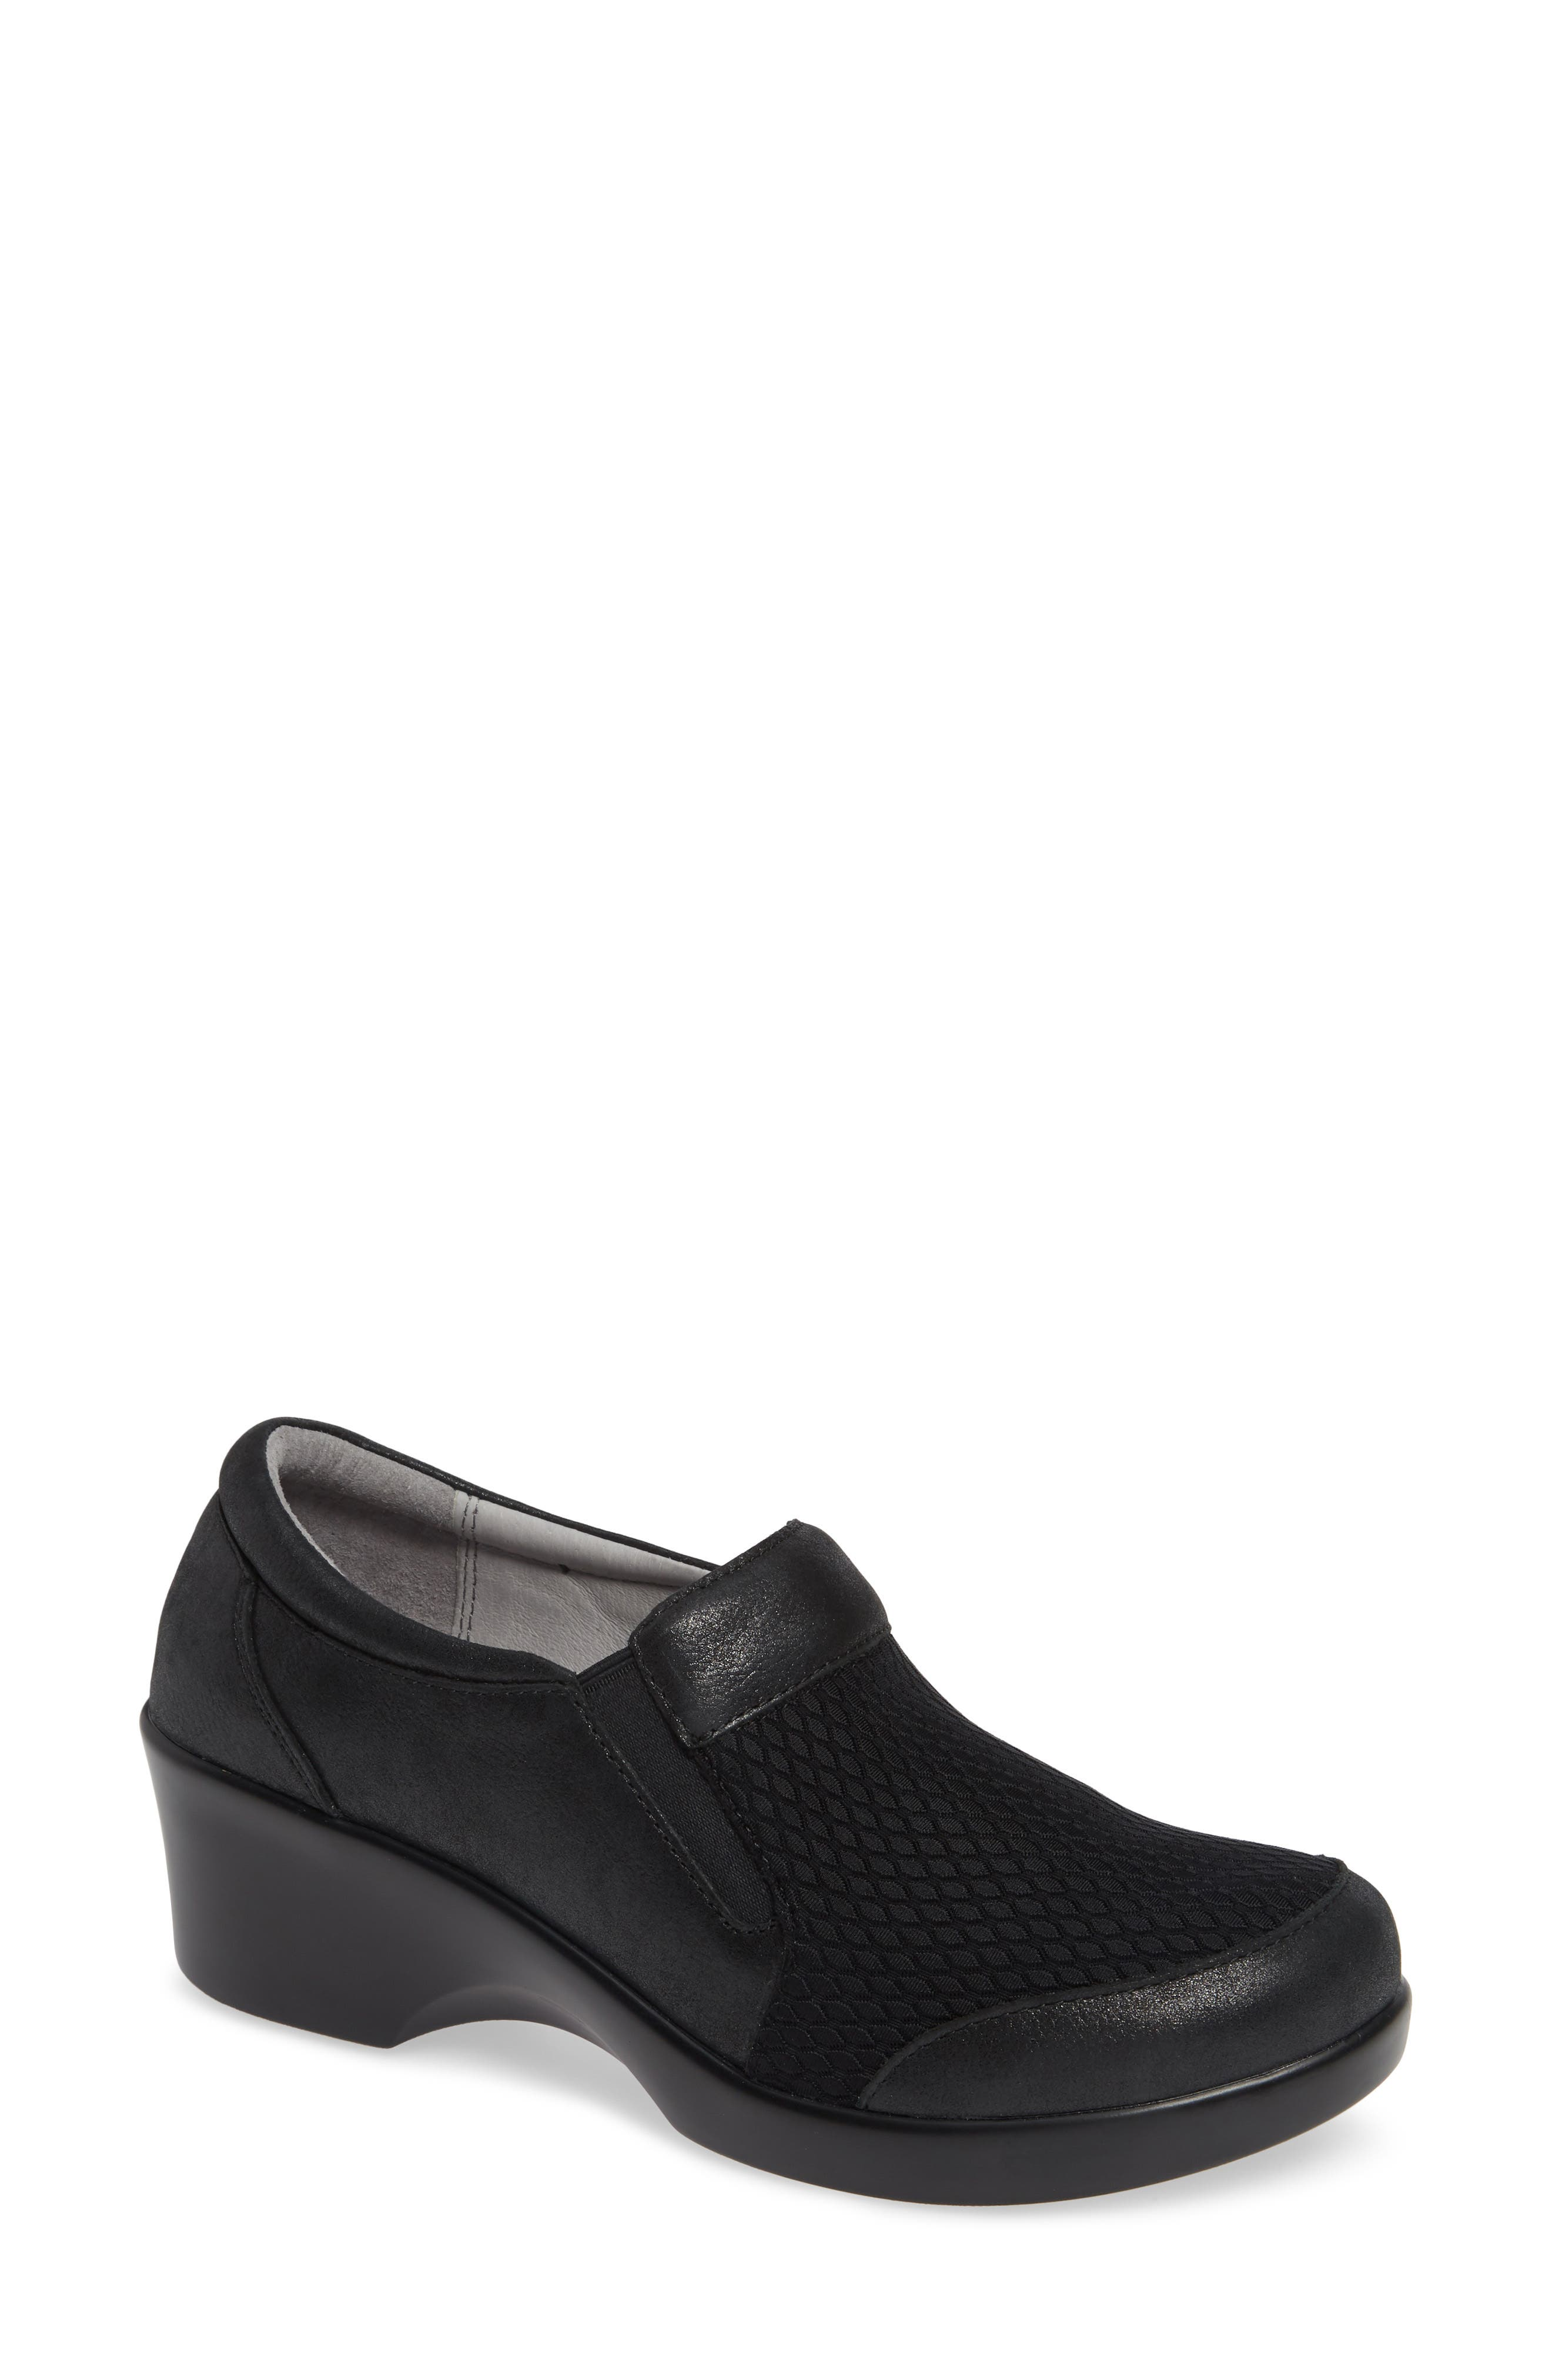 Eryn Pump,                             Main thumbnail 1, color,                             ANISE BABY TUMBLE LEATHER